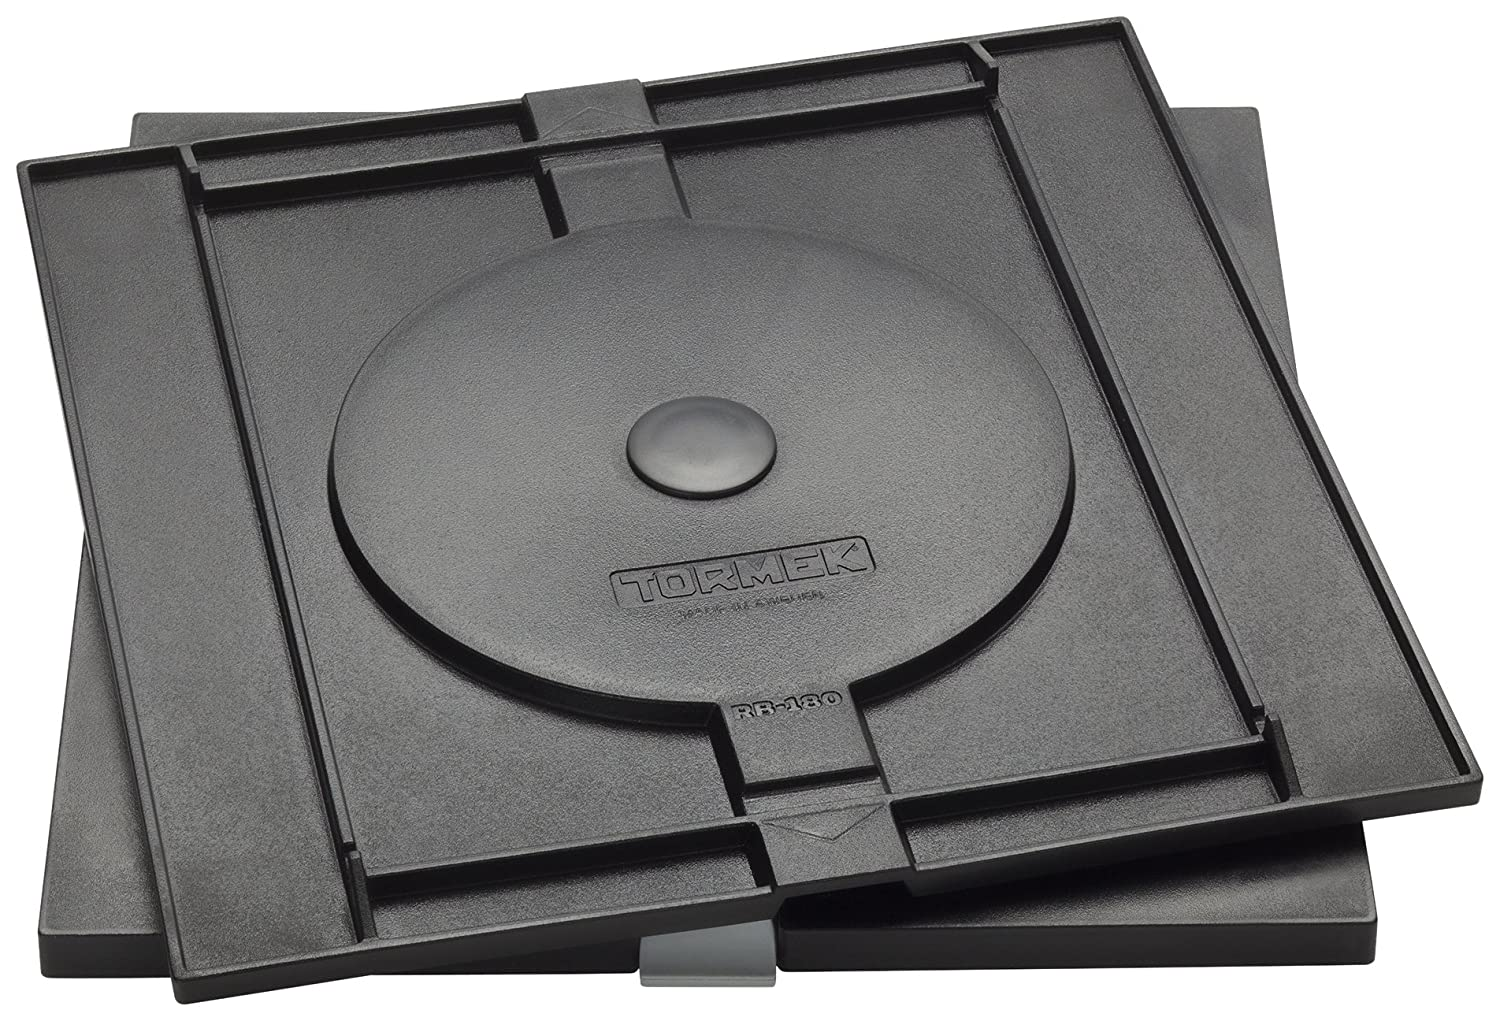 Swivel Base for Tormek Sharpener RB180. This Handy Rotational Base Fits the T-7, T-4, T-3, and Super Grind 1200 and 2000 Sharpening Systems Affinity Tools TOR-RB180